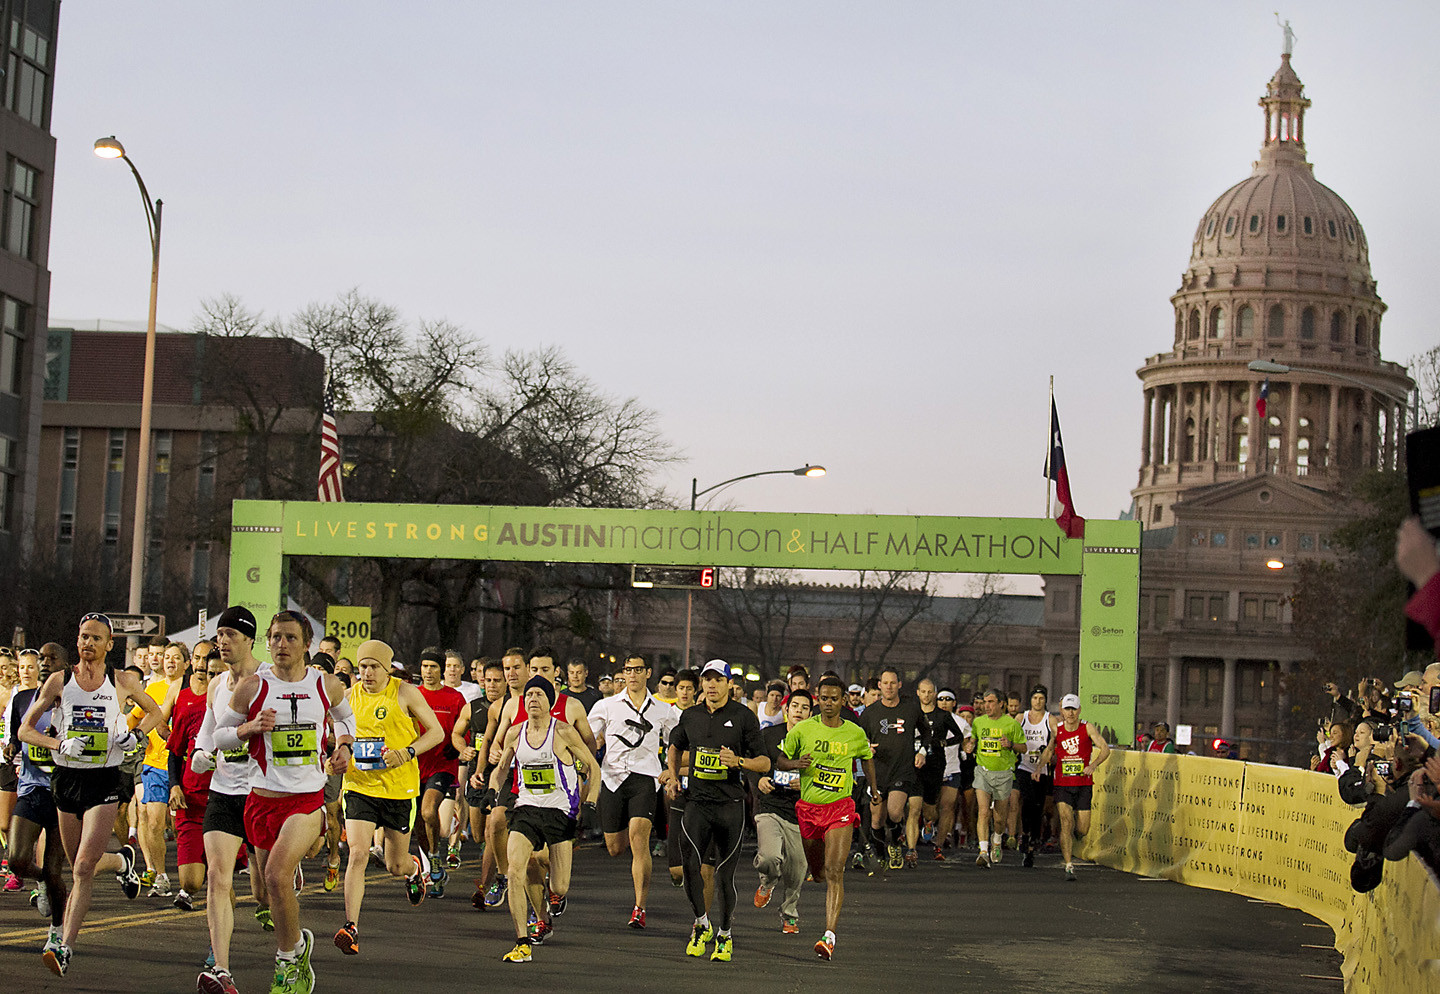 Camp Gladiator will be a new partner for the 28th annual Austin Marathon